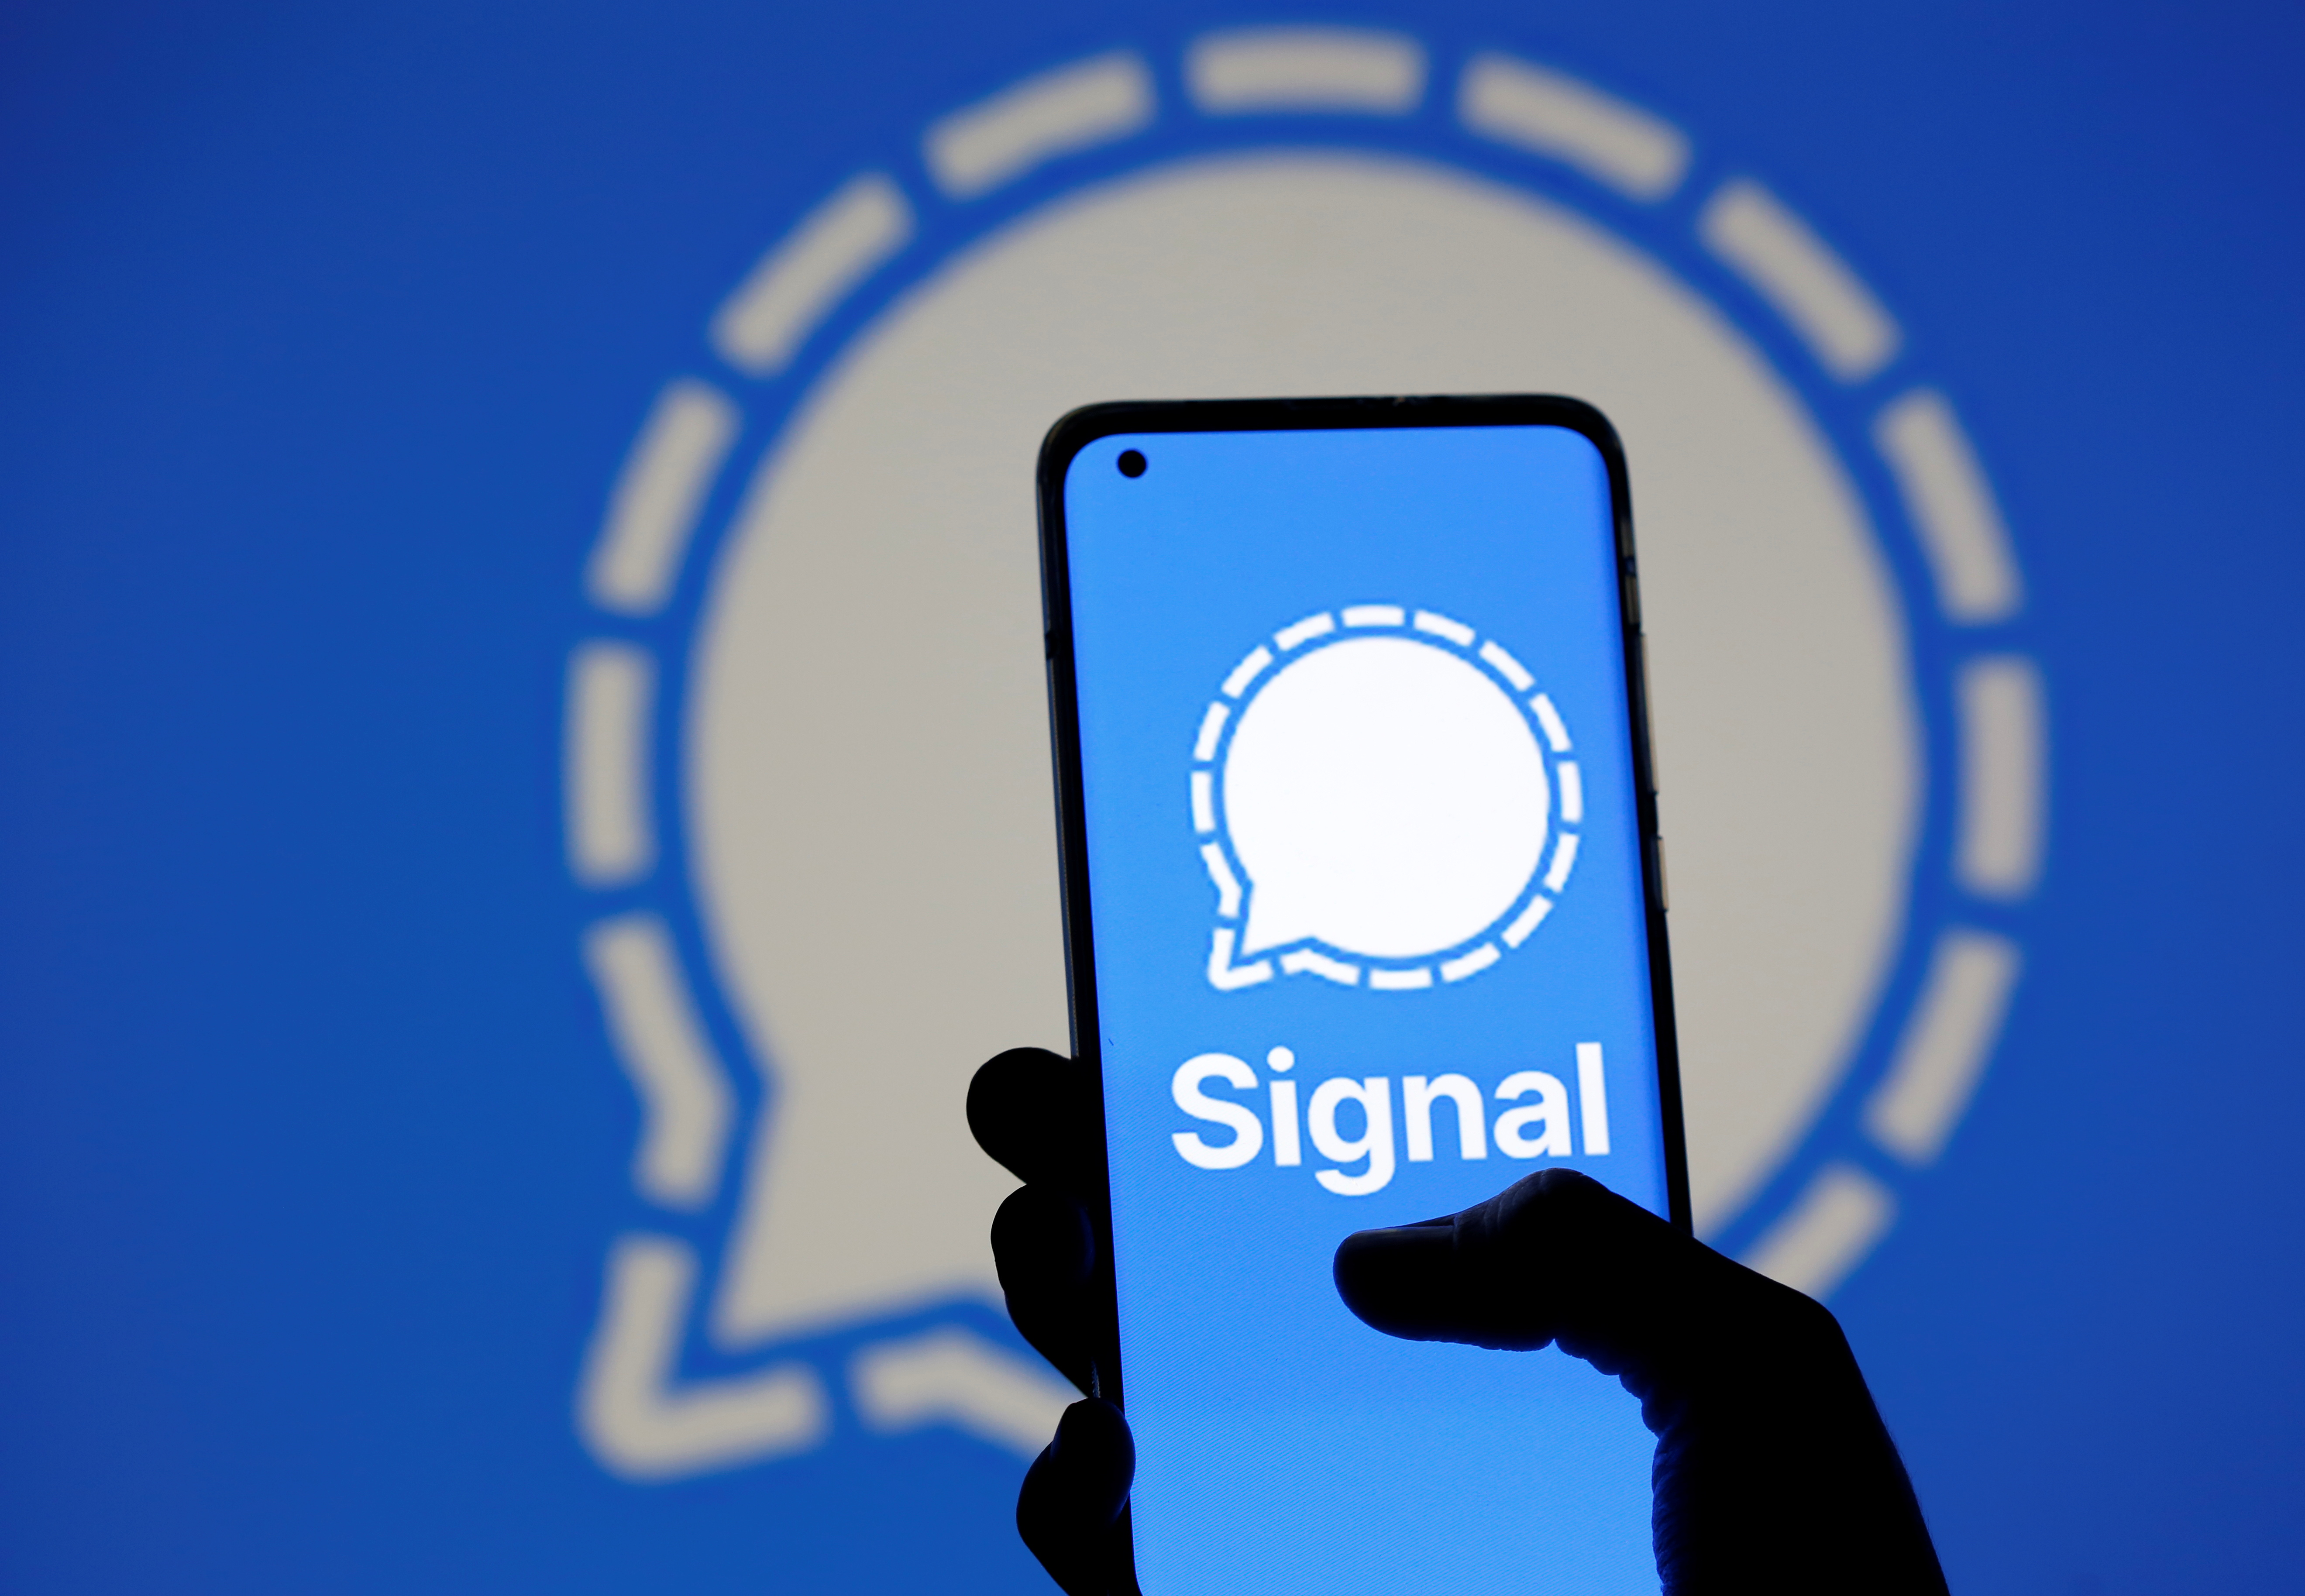 The Signal messaging app logo is seen on a smartphone, in front of the same displayed same logo, in this illustration taken, January 13, 2021. REUTERS/Dado Ruvic